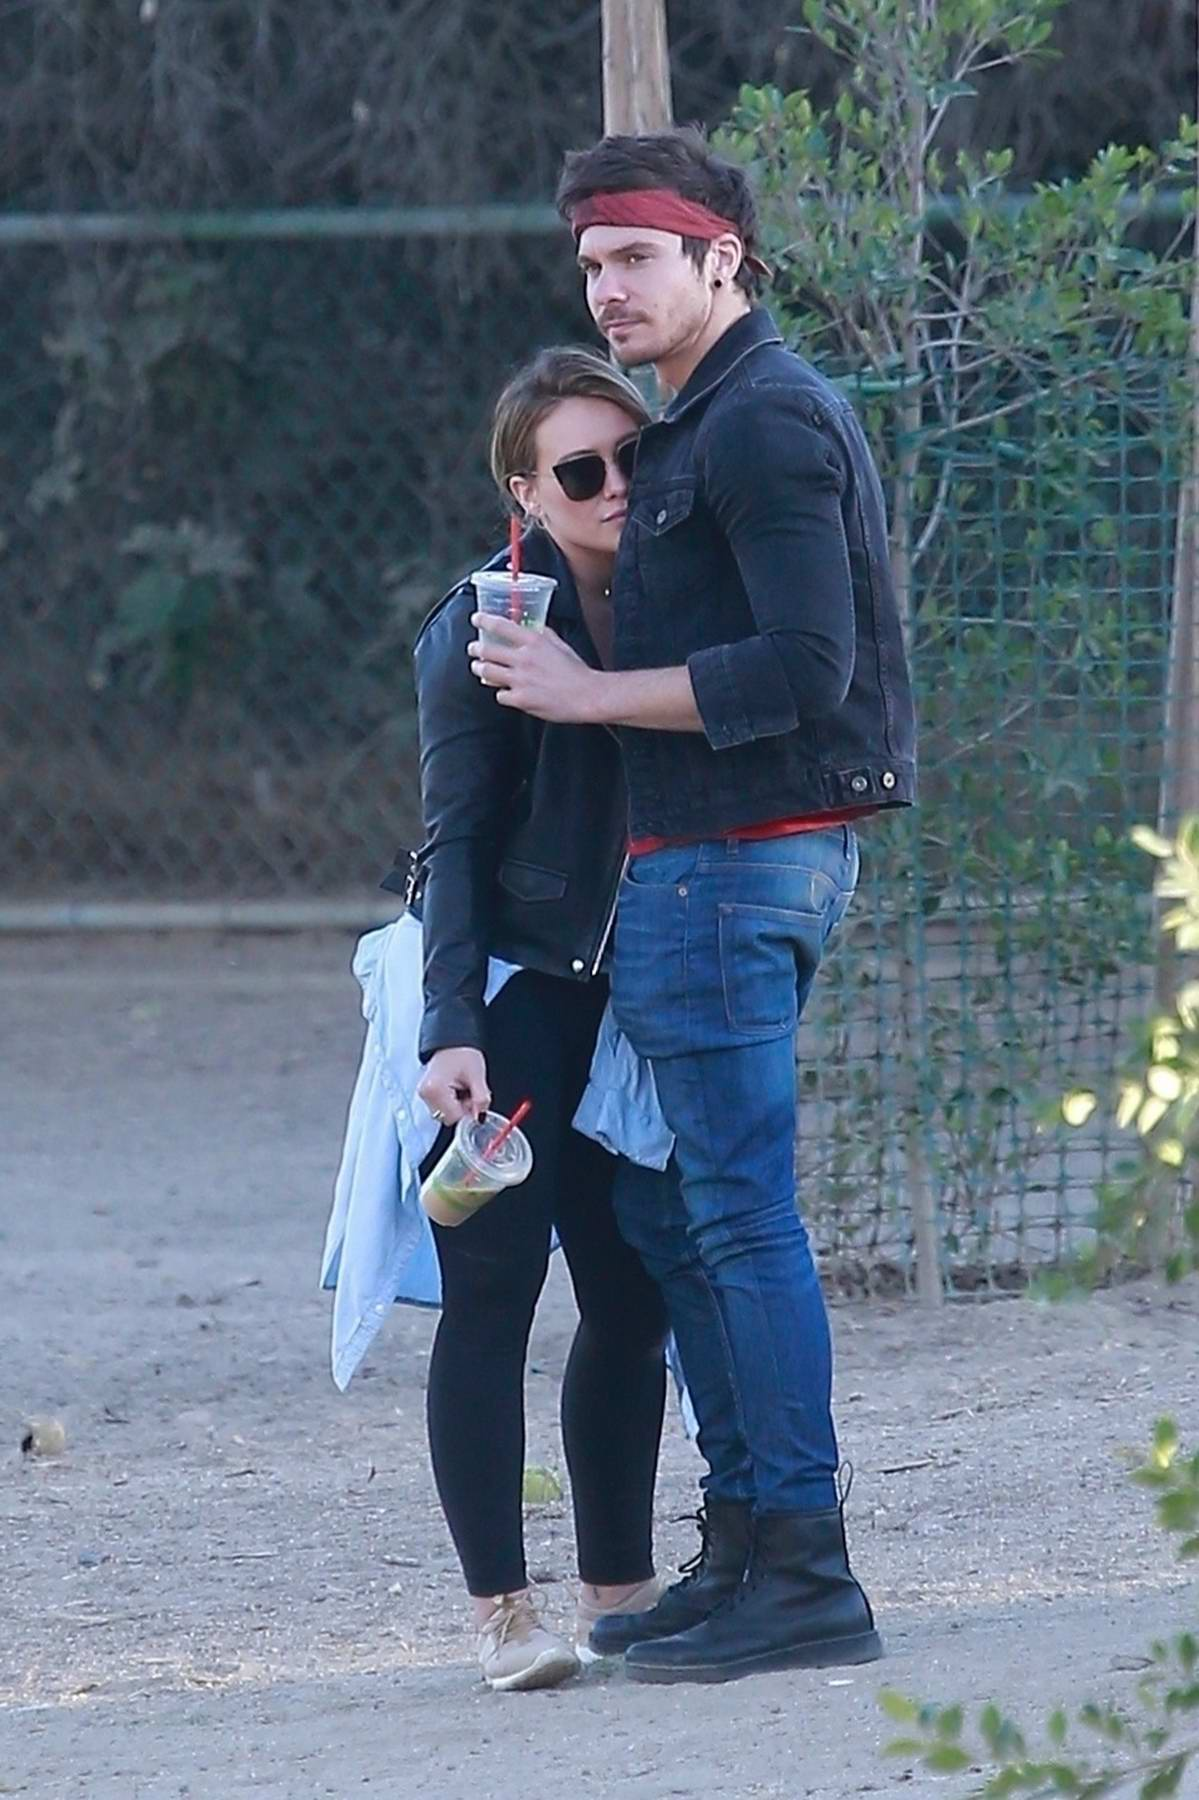 Hilary Duff enjoys a day out with Matthew Koma at a dog park in Los Angeles